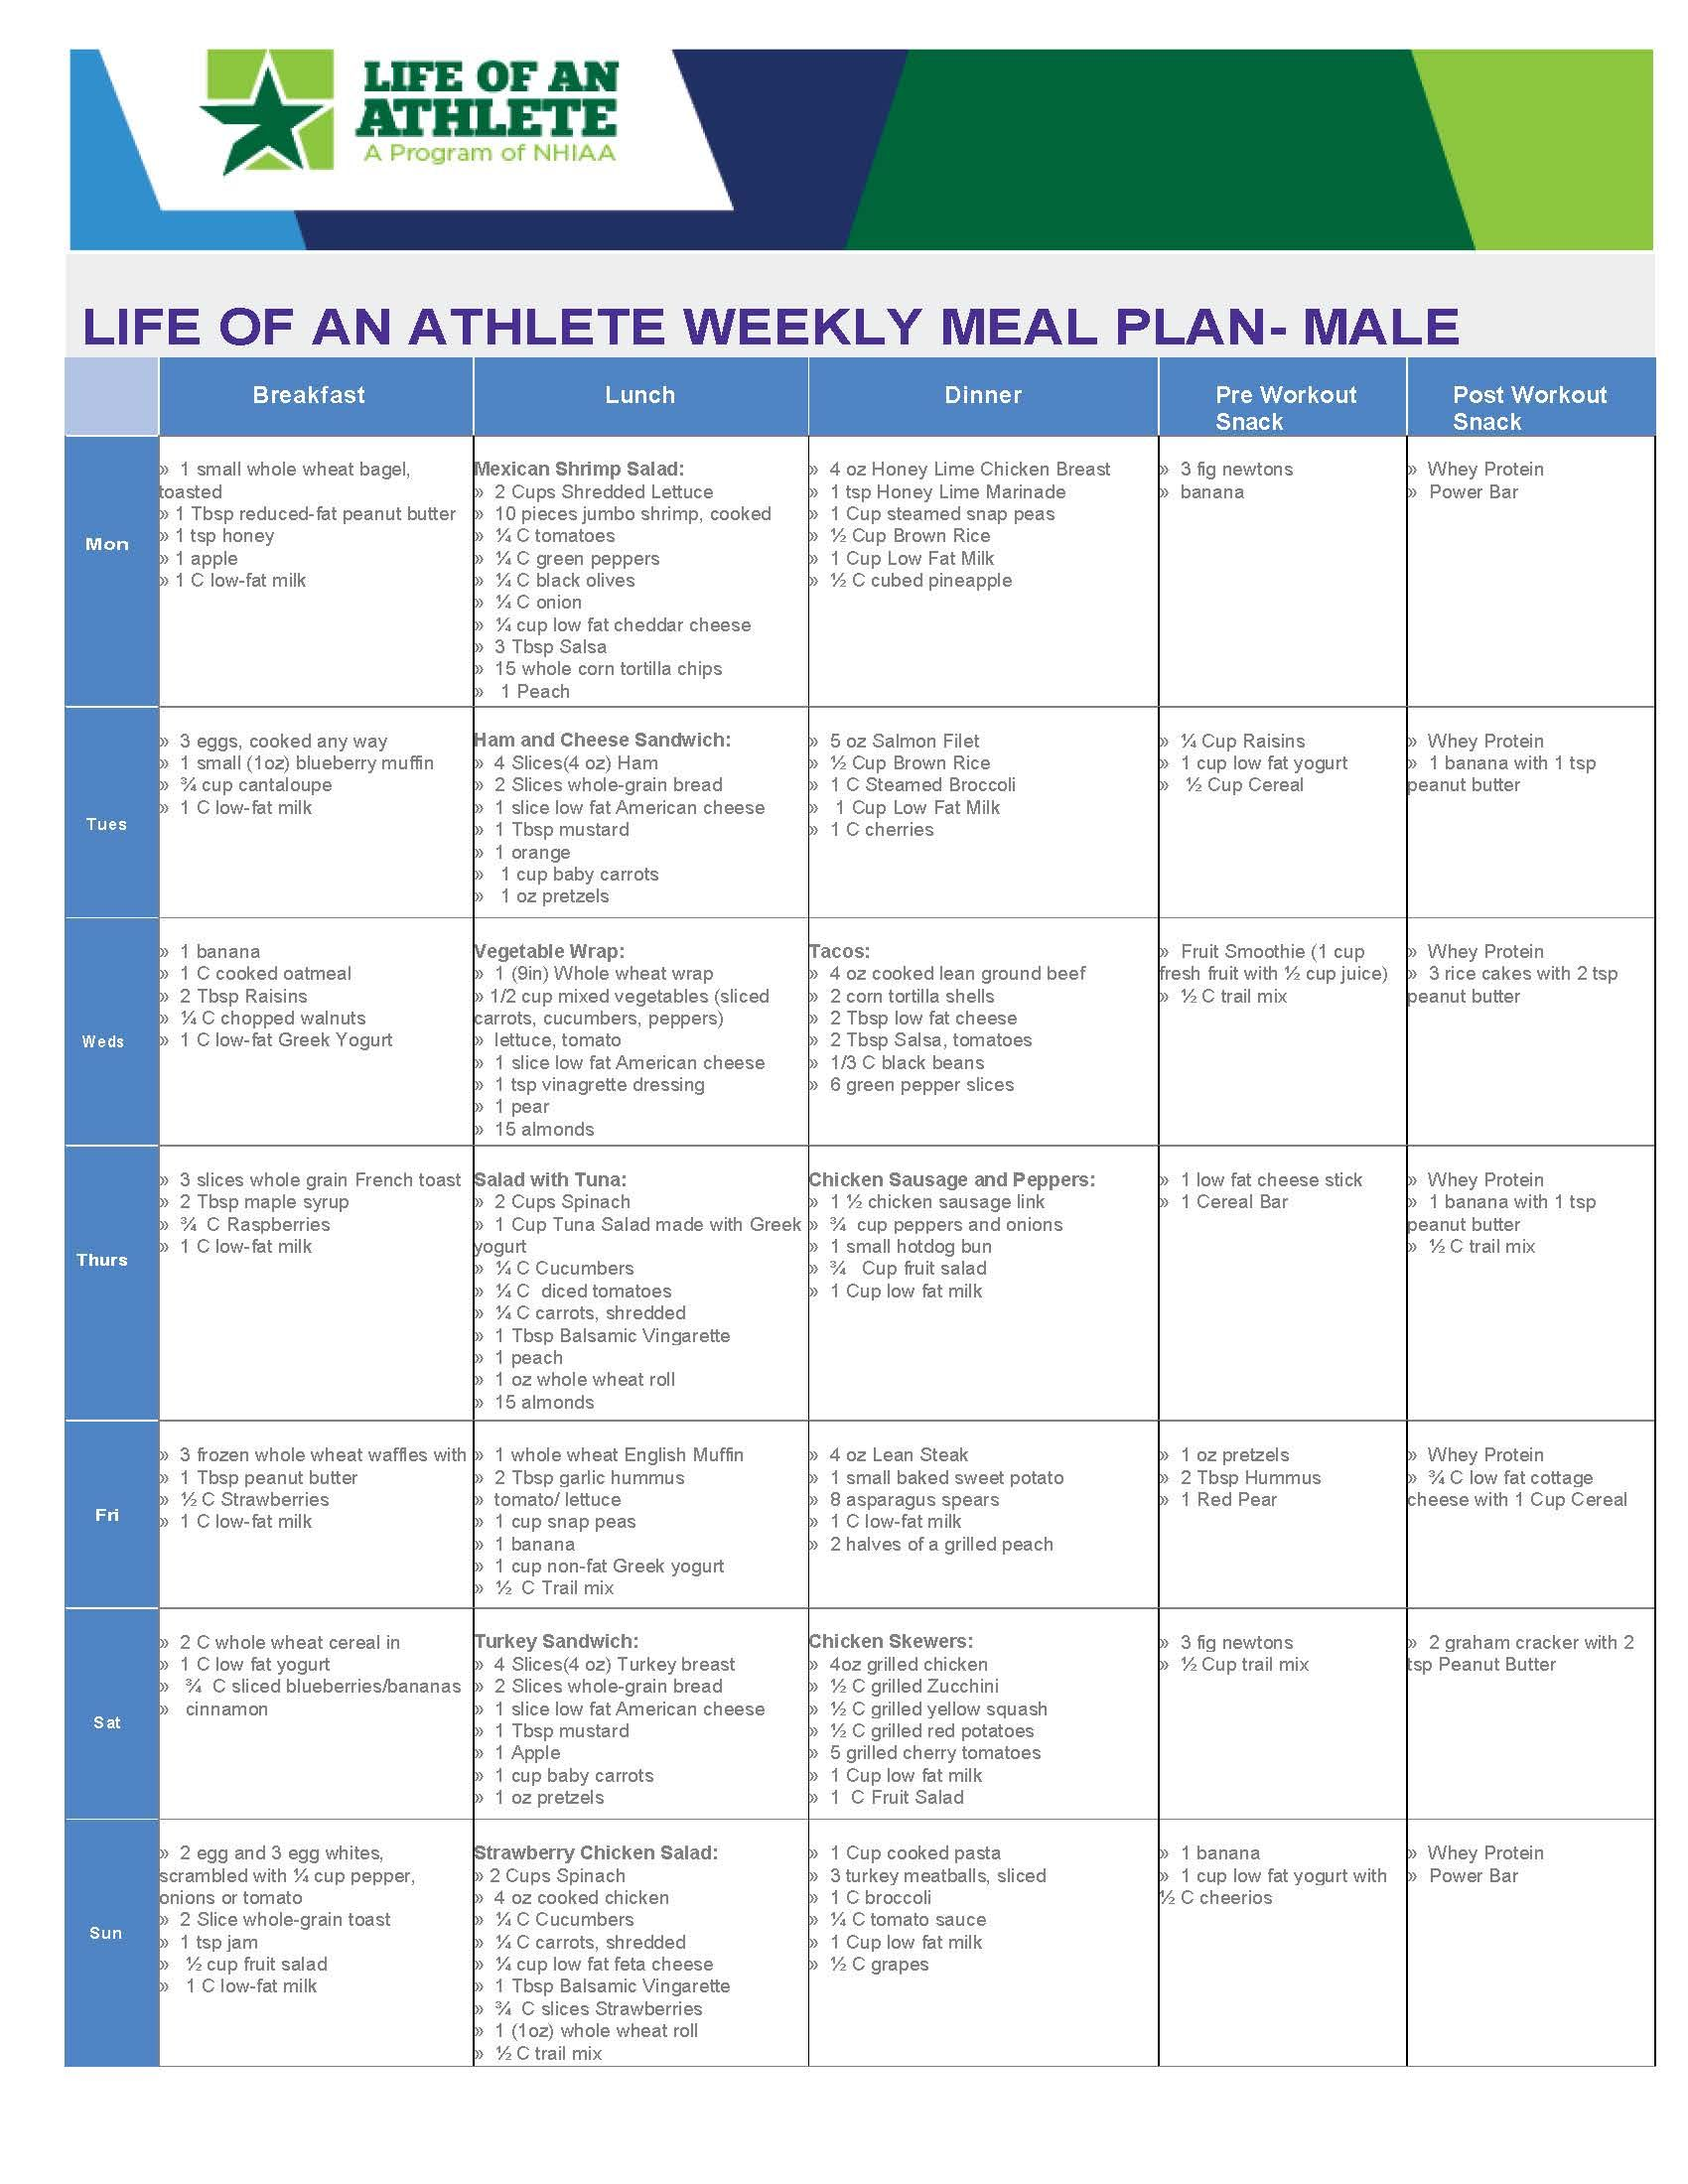 Loa Weekly Meal Plan For Male Athlete Week   Weekly Meal Plans